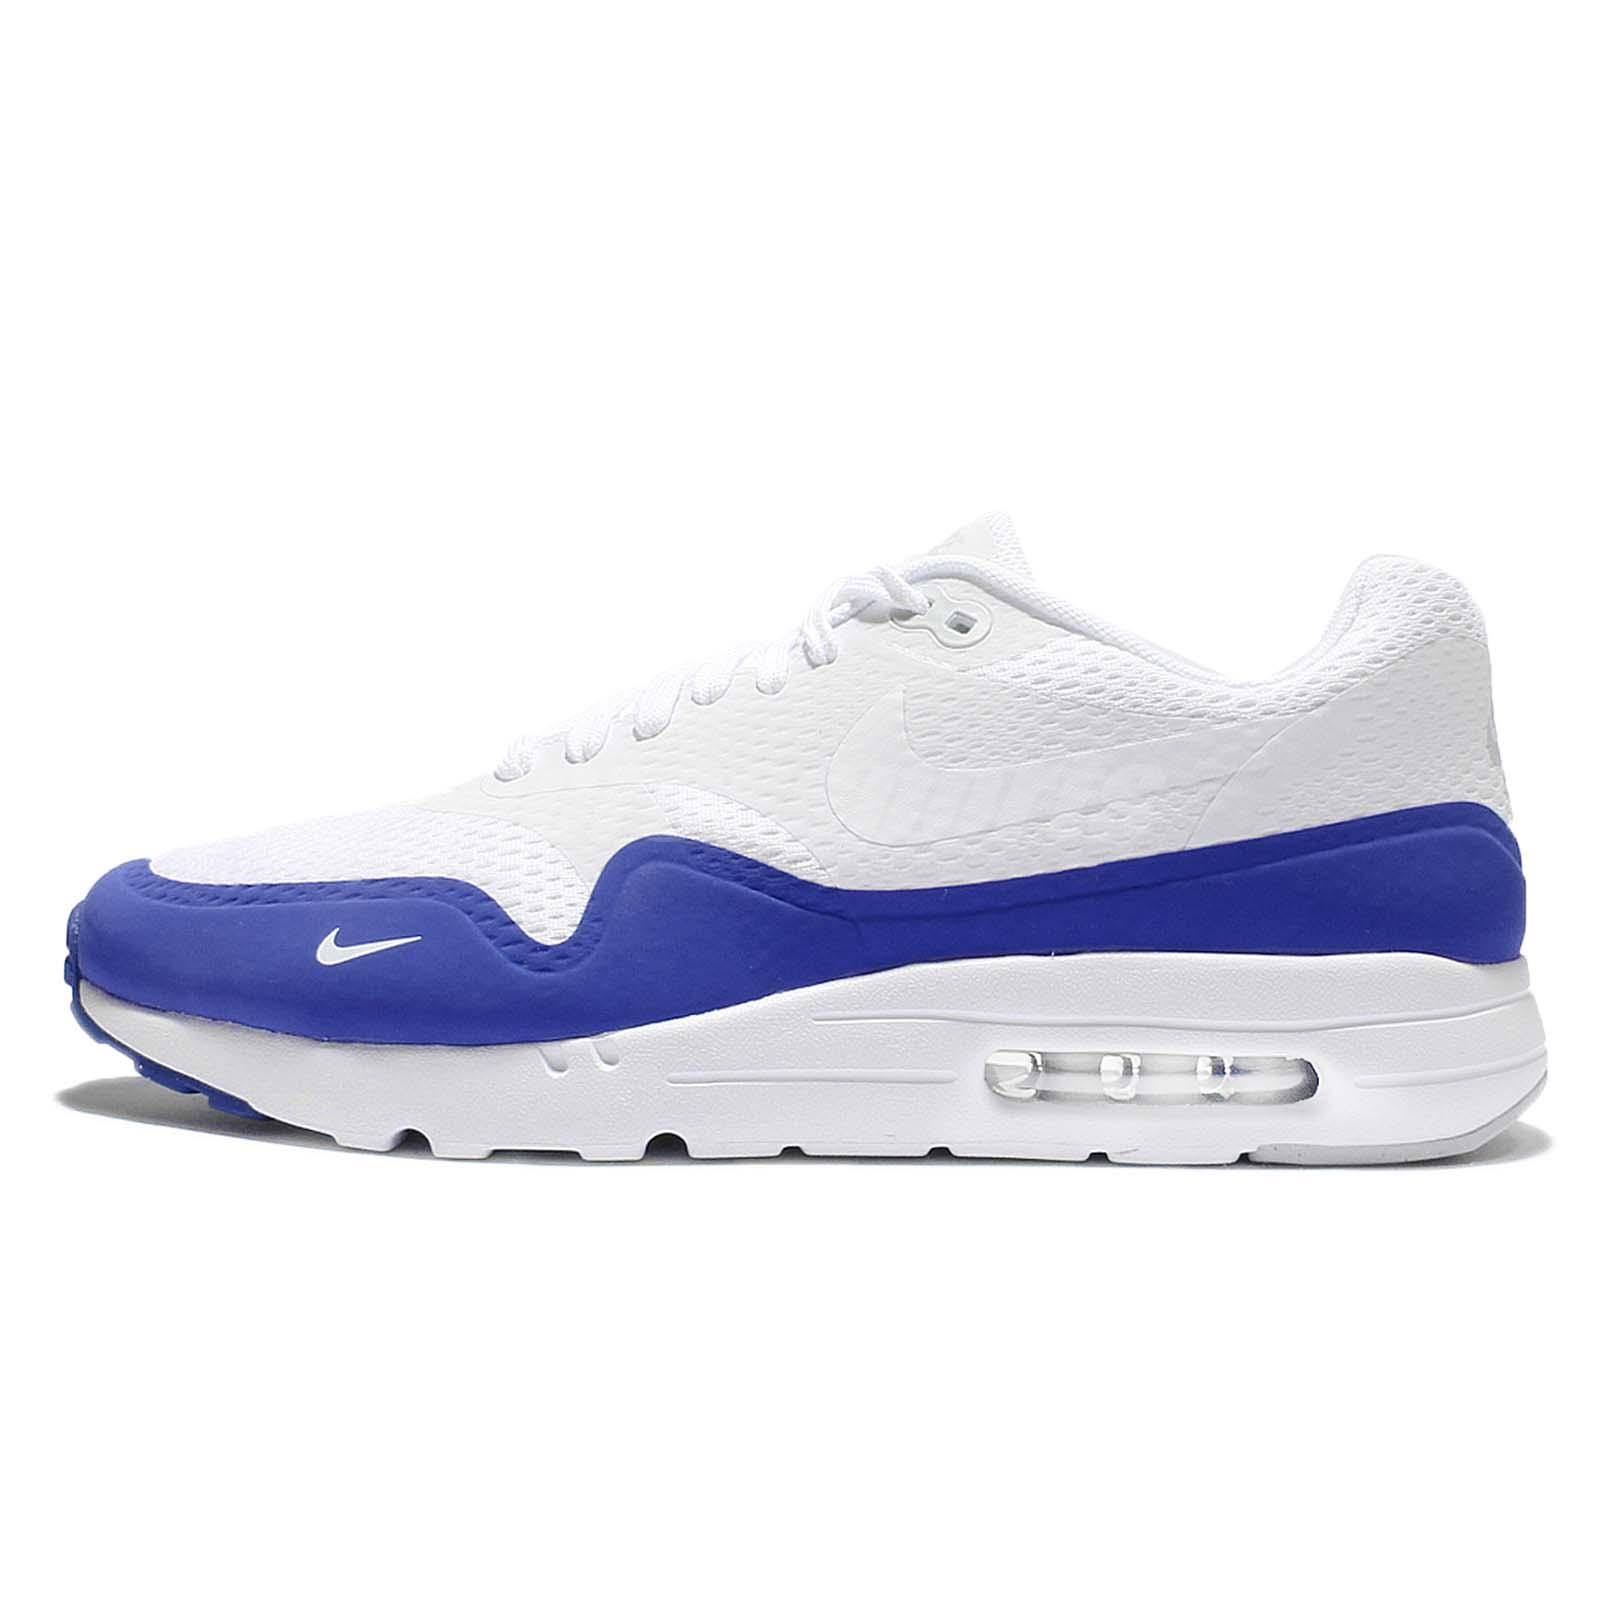 Nike Air Max 1 Ultra Essential NSW White Blue Men Running Shoes 819476-114